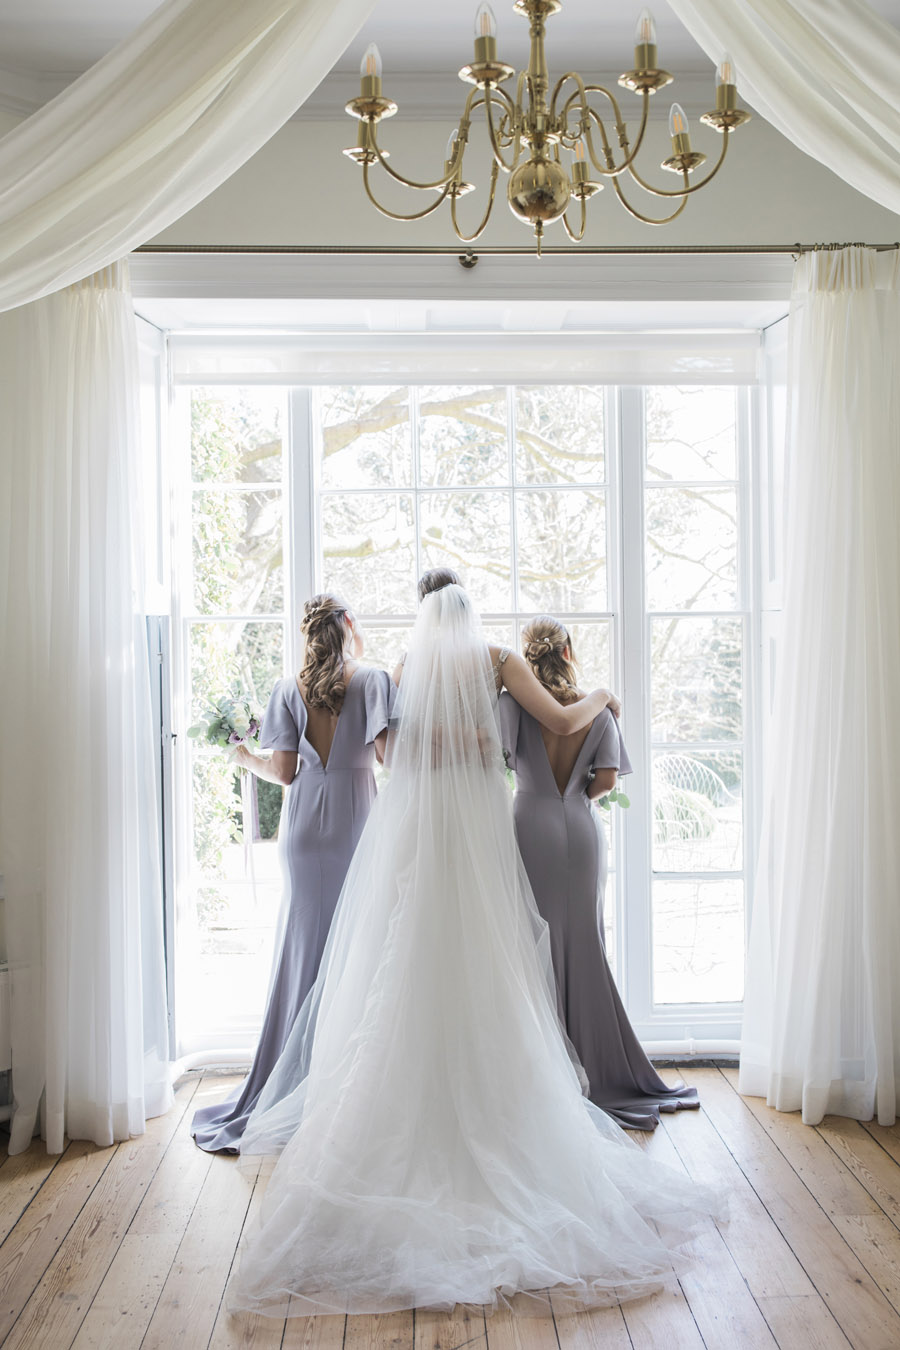 for bridesmaids everywhere, with love. Image credit Natalie D Photography (22)